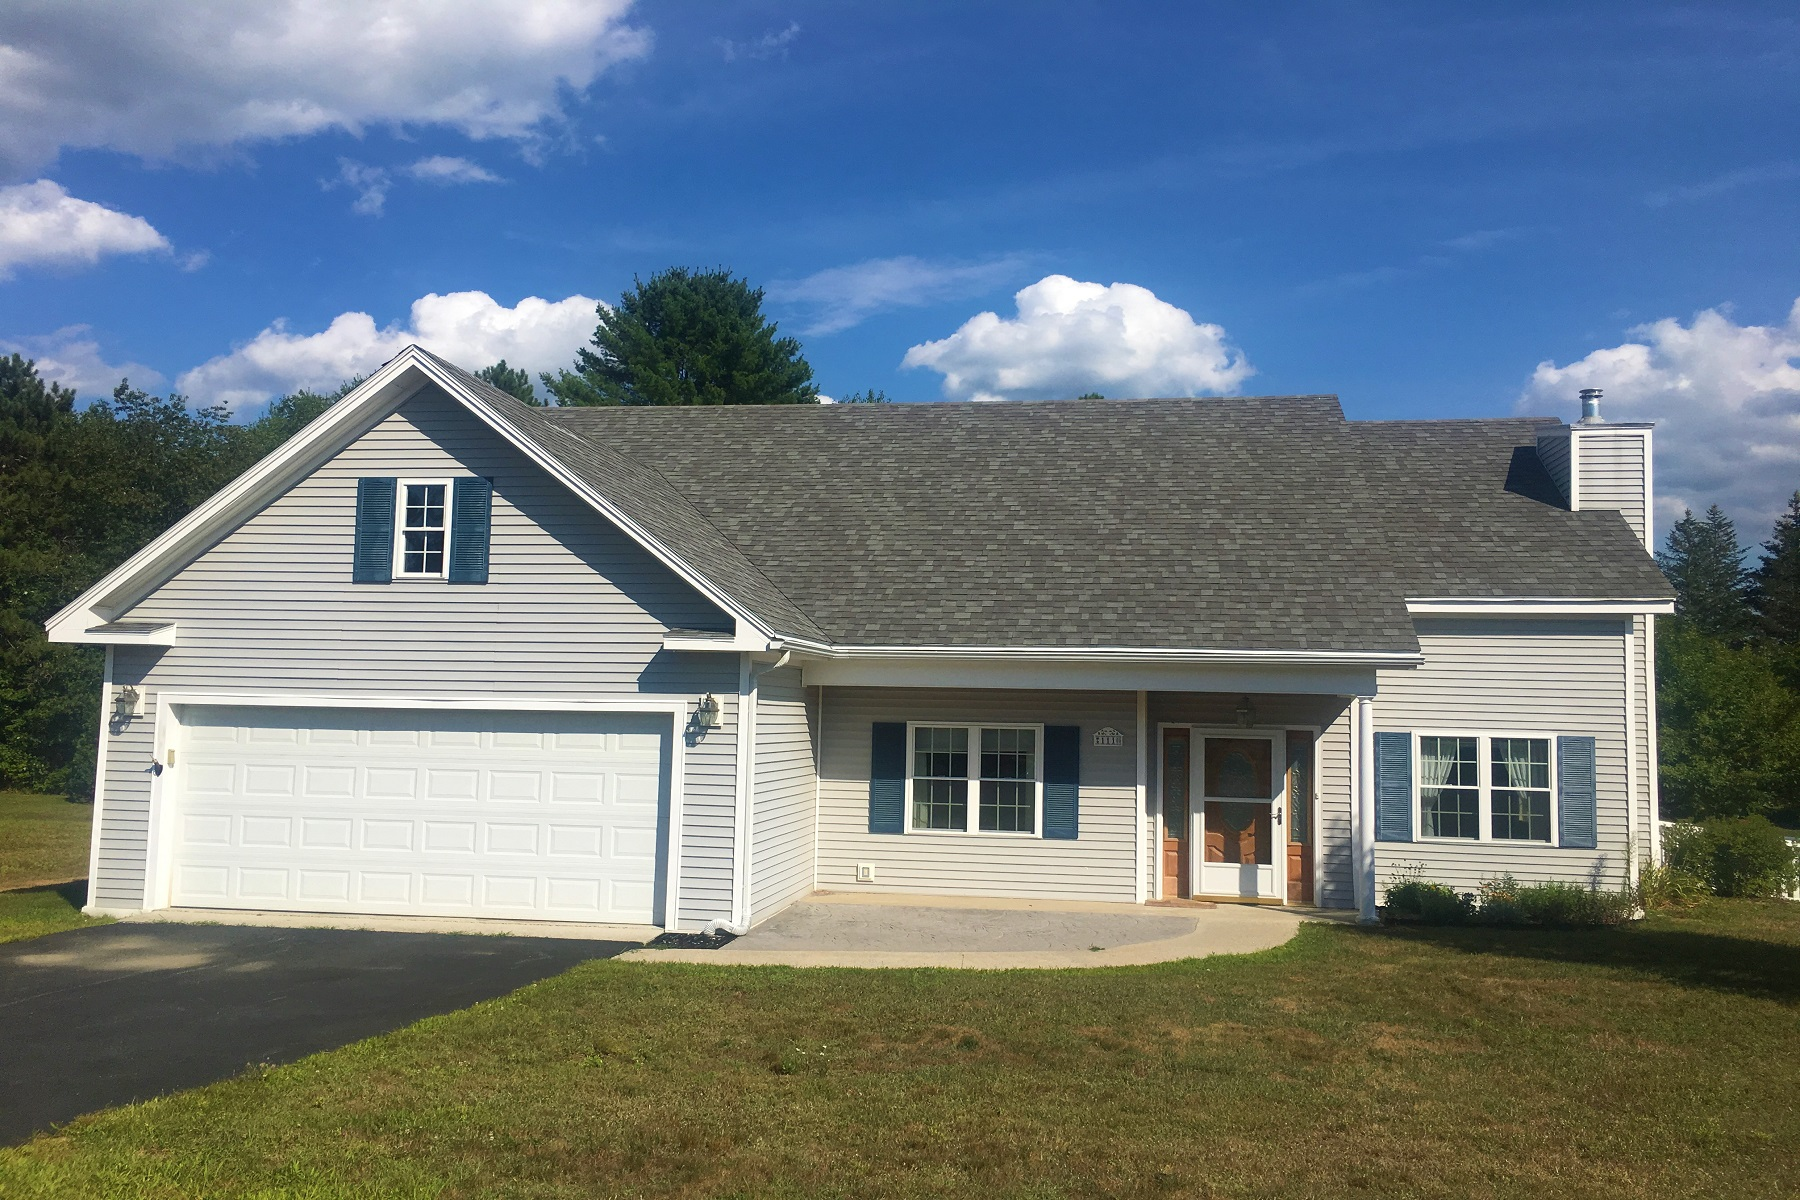 Single Family Homes for Sale at Impeccable Single Level Home 111 Waterford Lane Springfield, Vermont 05150 United States